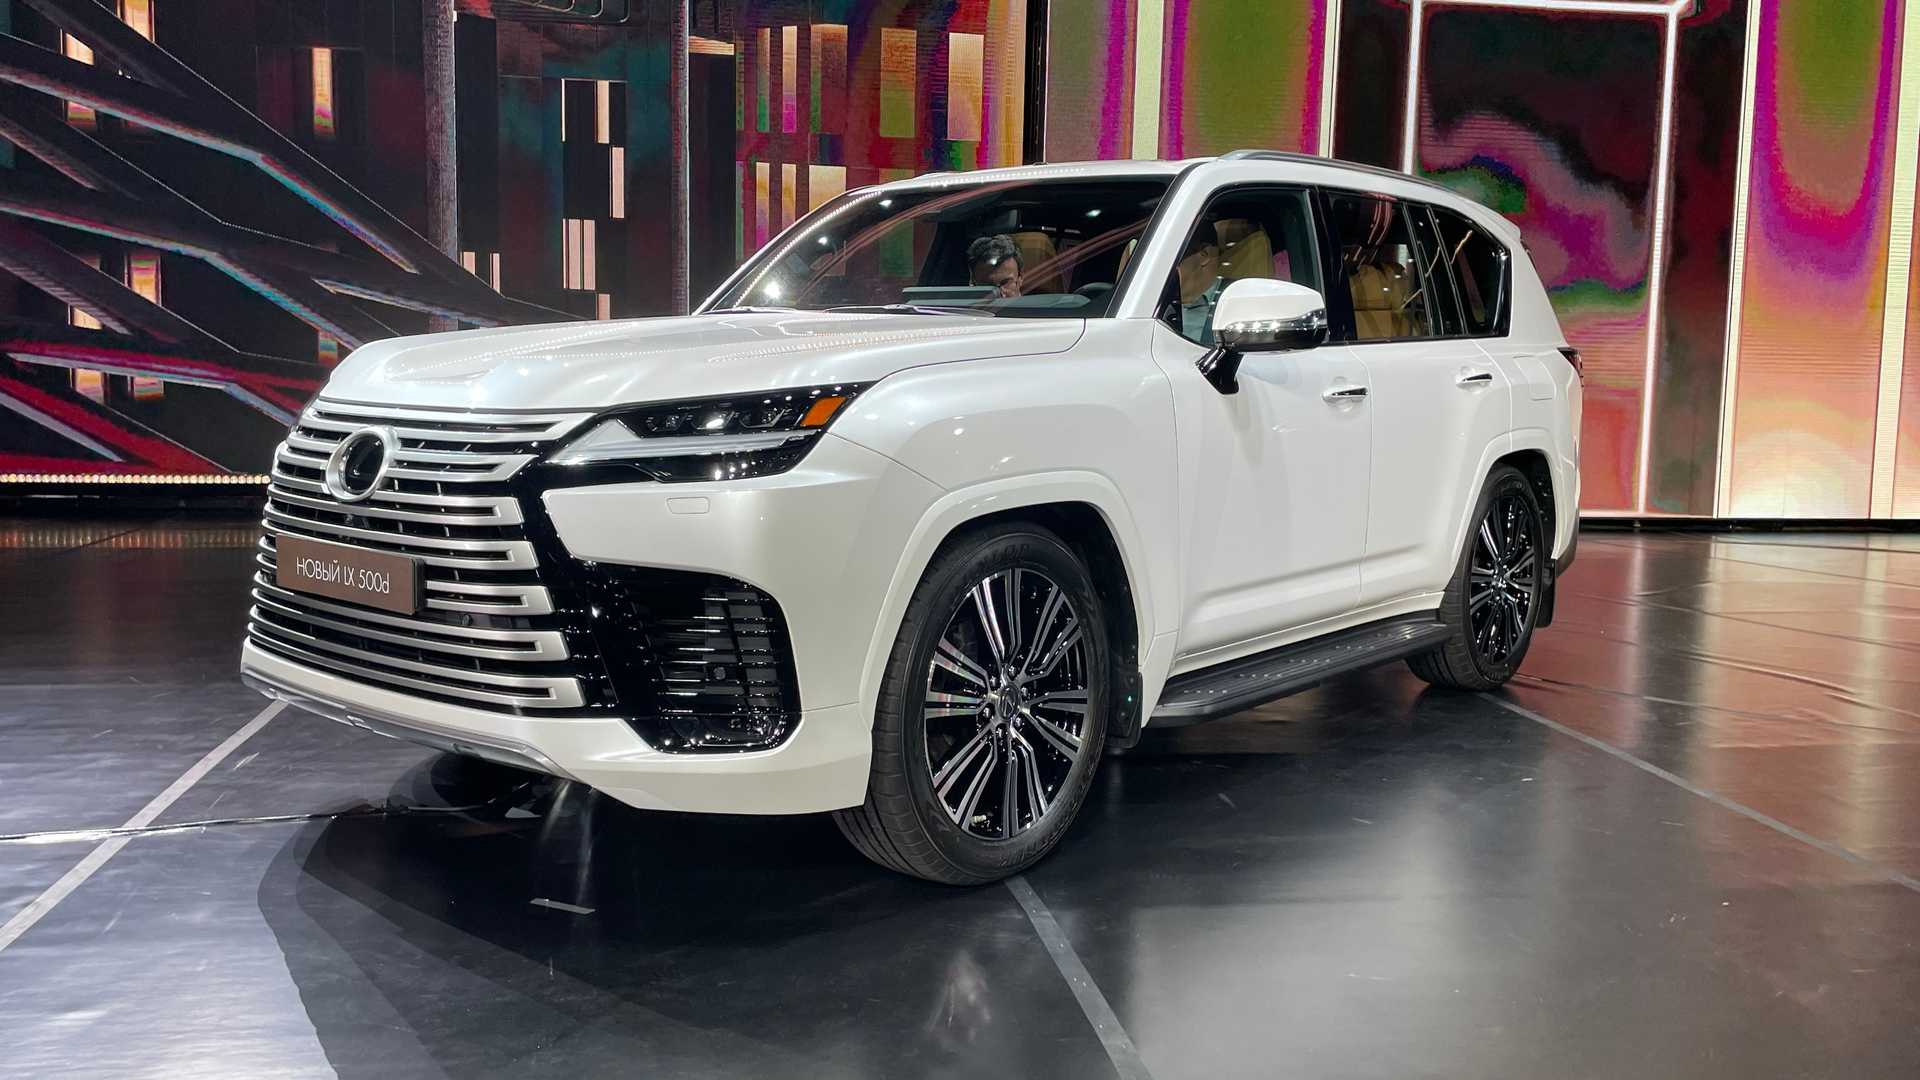 The Japanese automaker has unveiled the fourth iteration of its flagship SUV LX. Moving the model to GA-F architecture enabled it to shed 200 kg (440 pounds) of weight while becoming much more rigid at the same time.